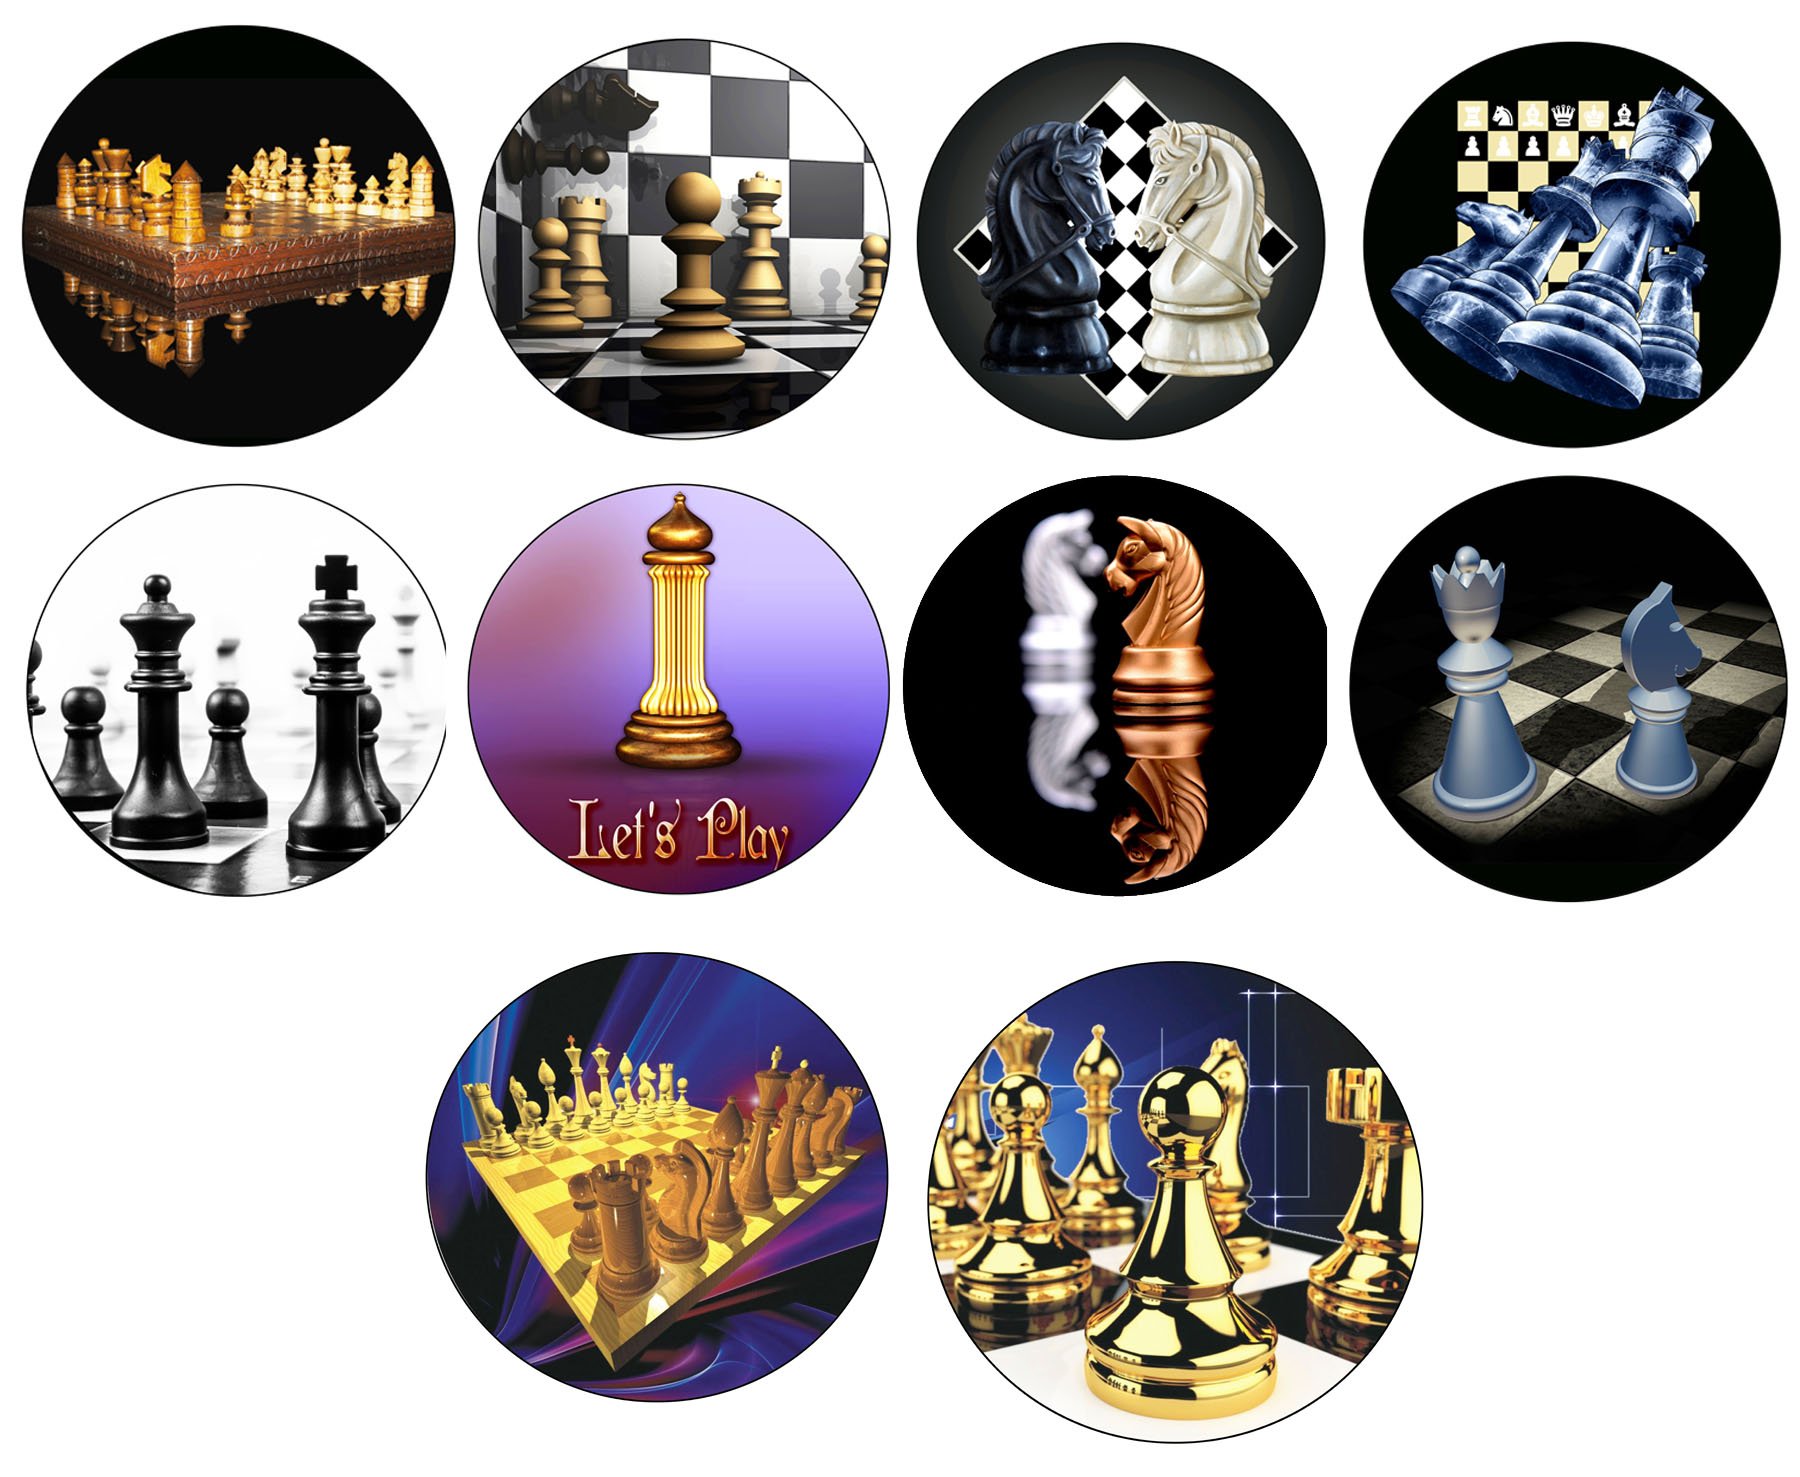 chess-category.jpg